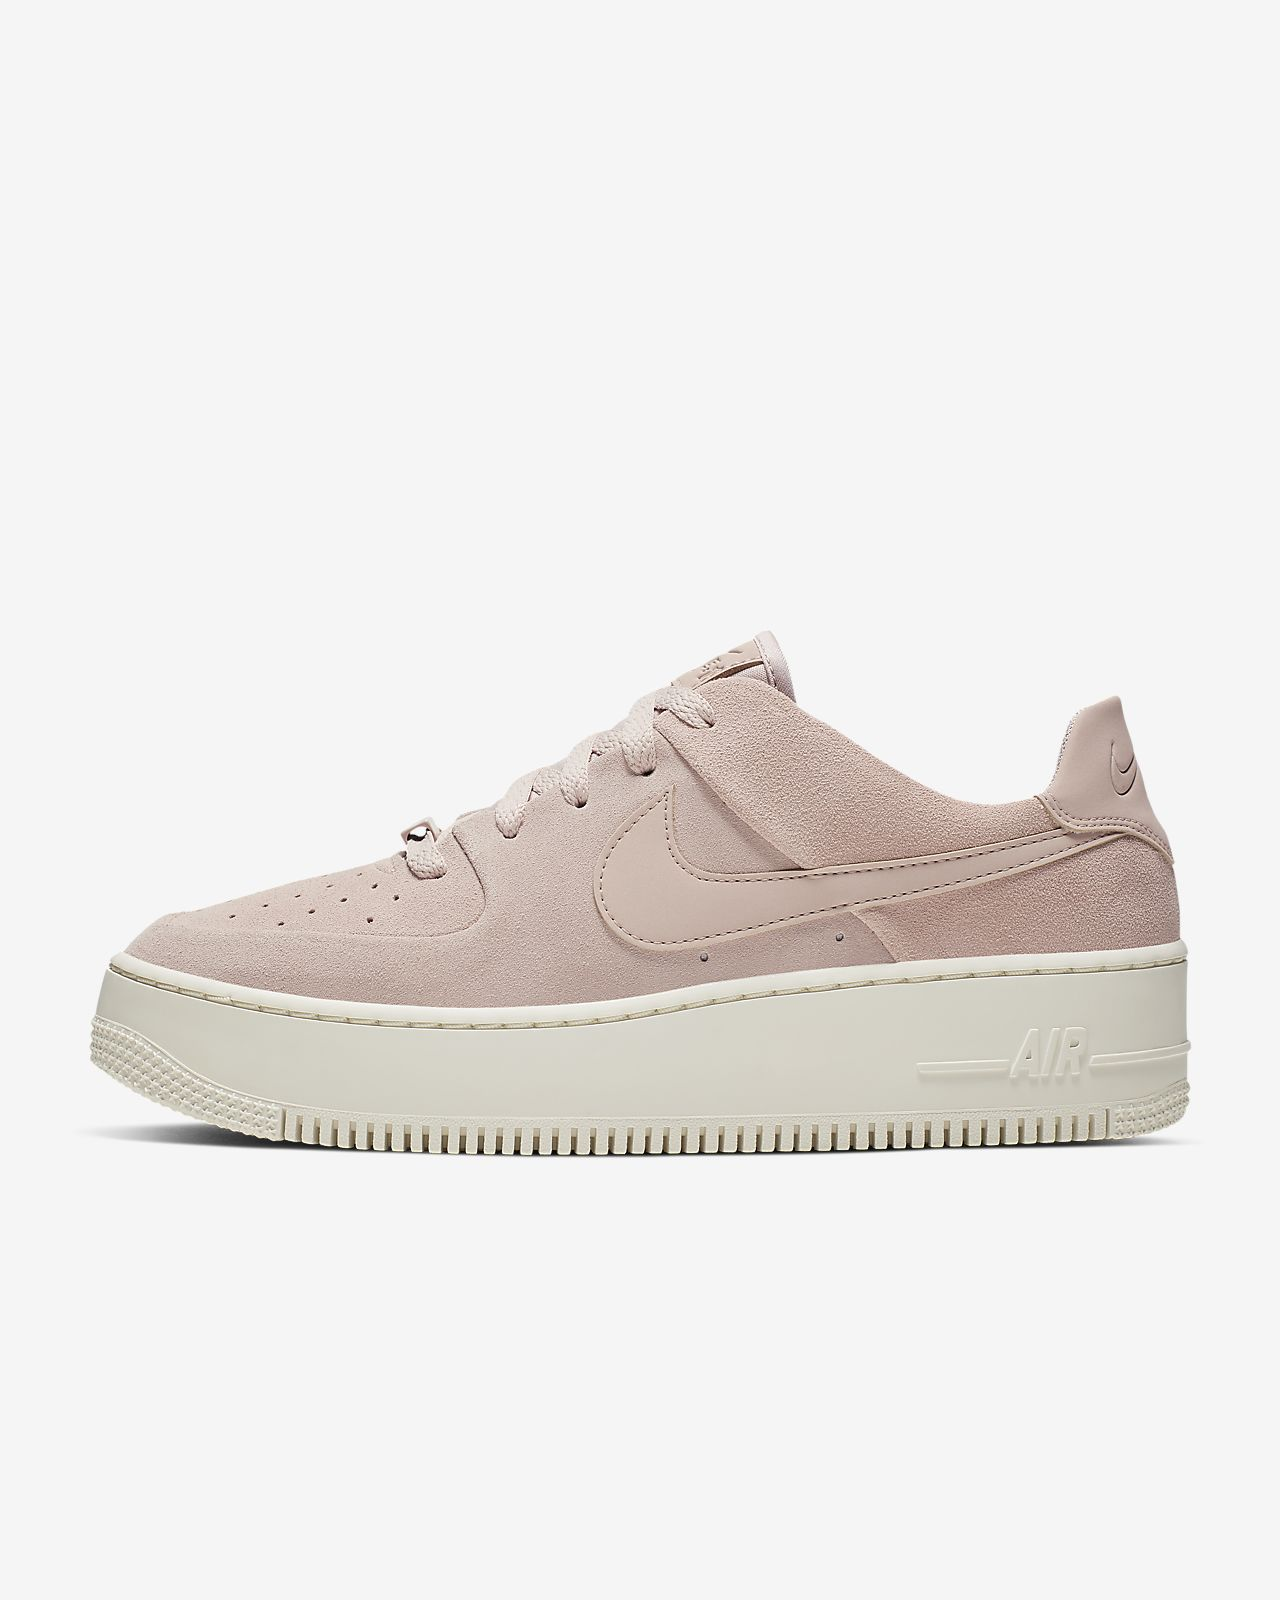 quality design edbf3 40718 ... Nike Air Force 1 Sage Low Womens Shoe